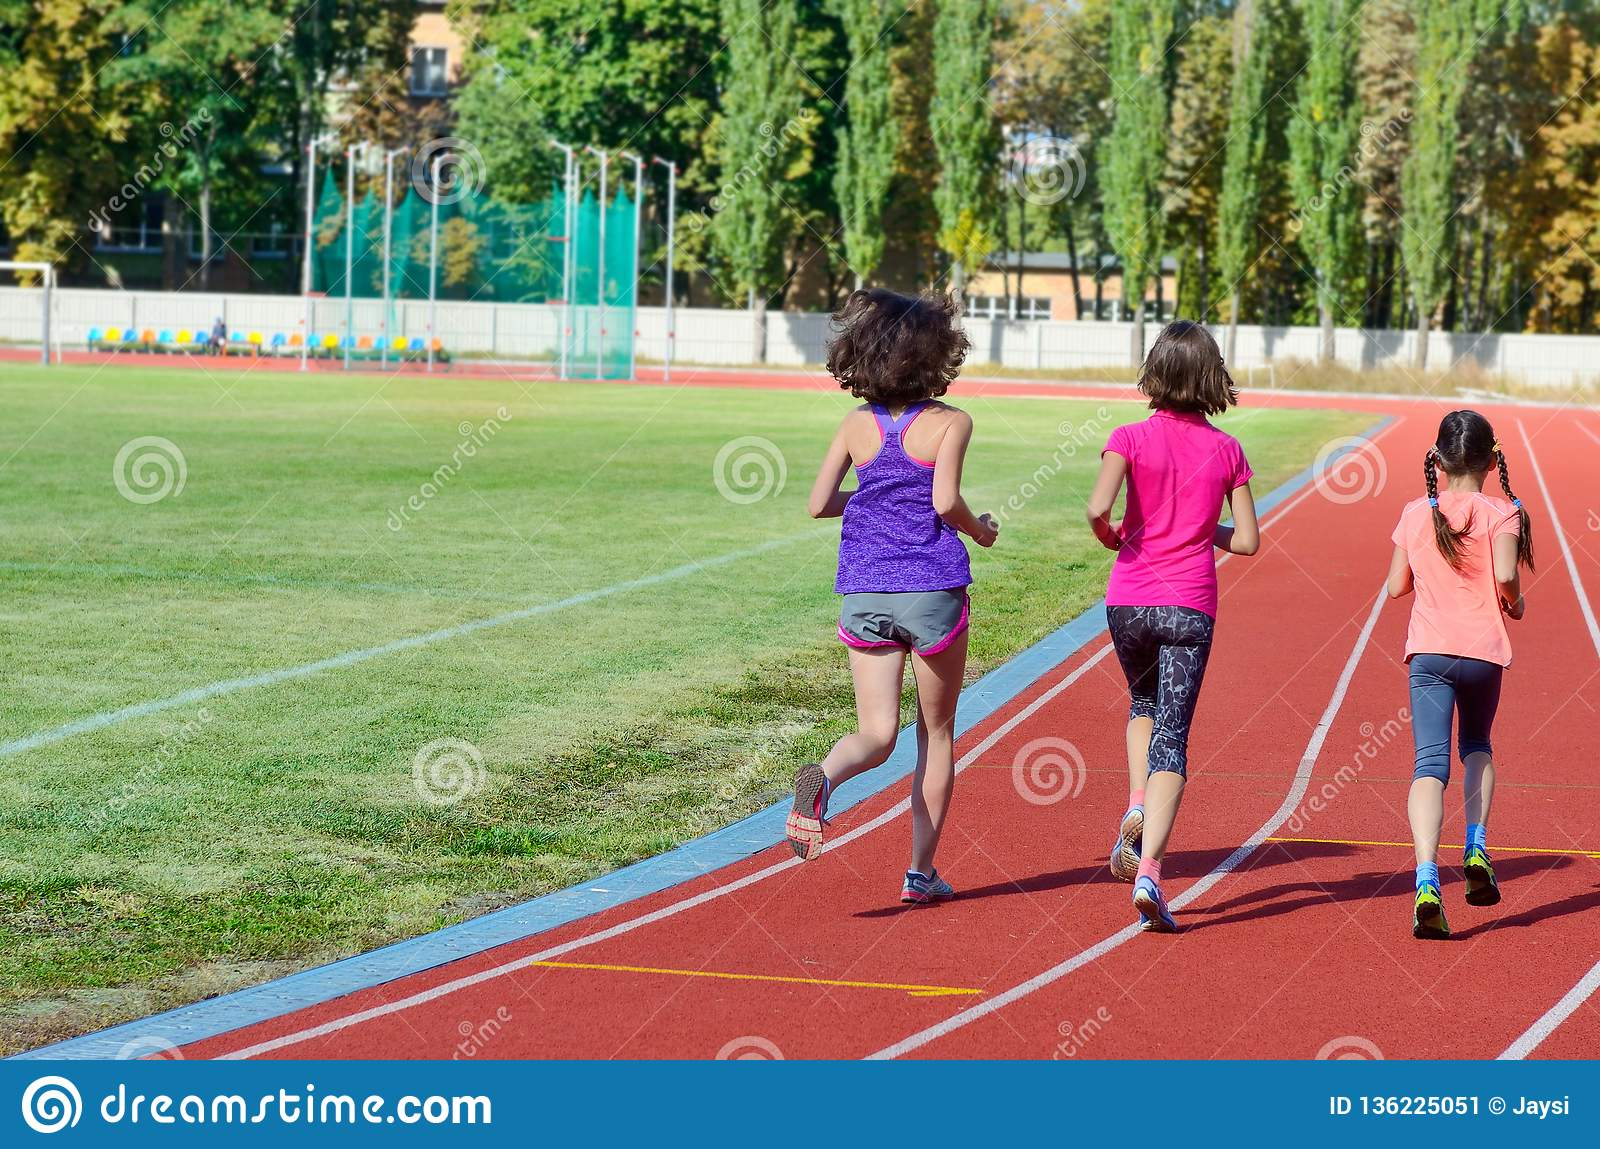 Family sport and fitness, happy mother and kids running on stadium track outdoors, children healthy active lifestyle